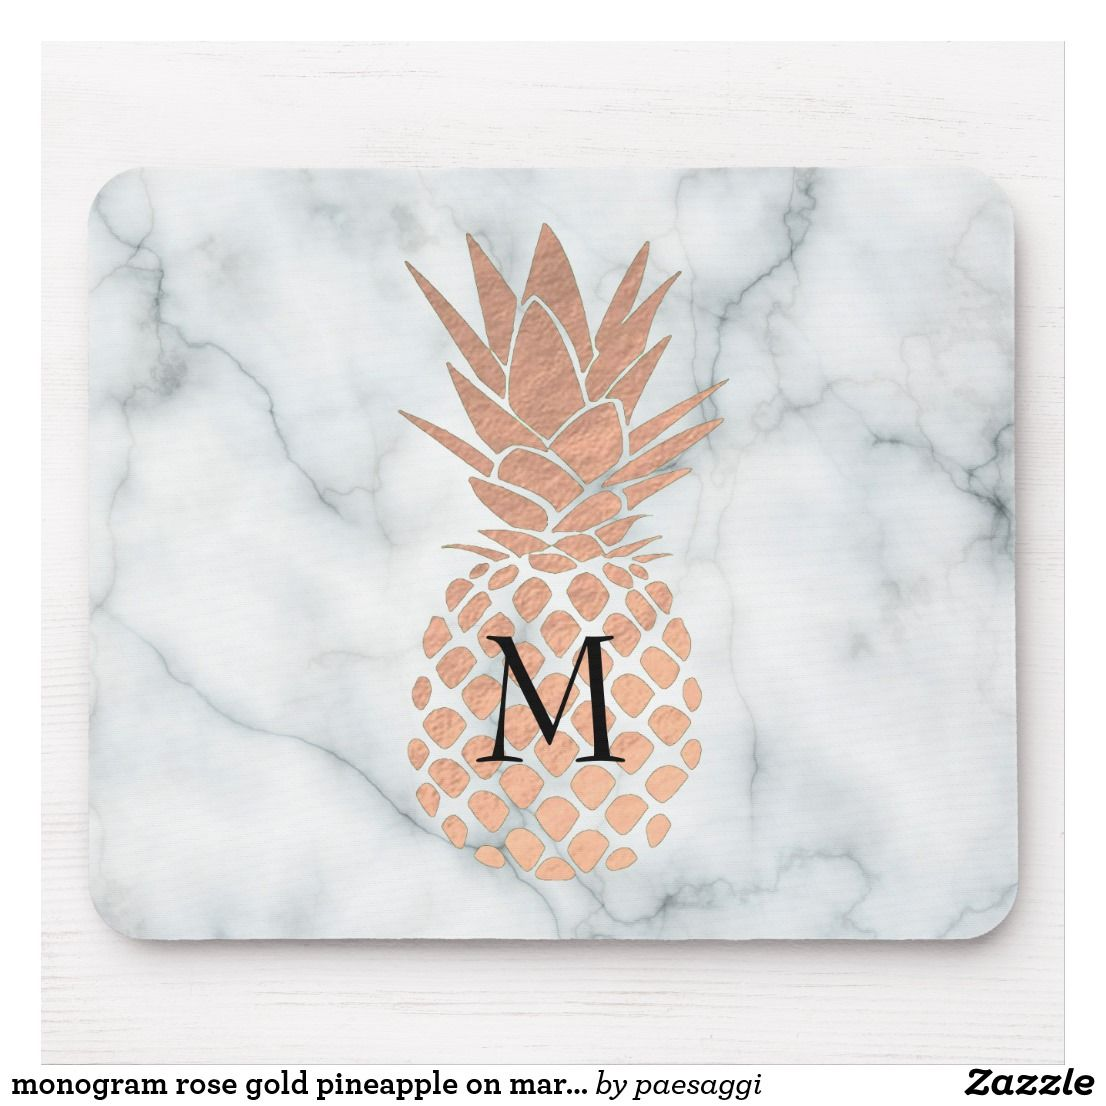 Monogram Rose Gold Pineapple On Marble Mouse Pad Gold Pineapple Wallpaper Pineapple Wallpaper Gold Pineapple